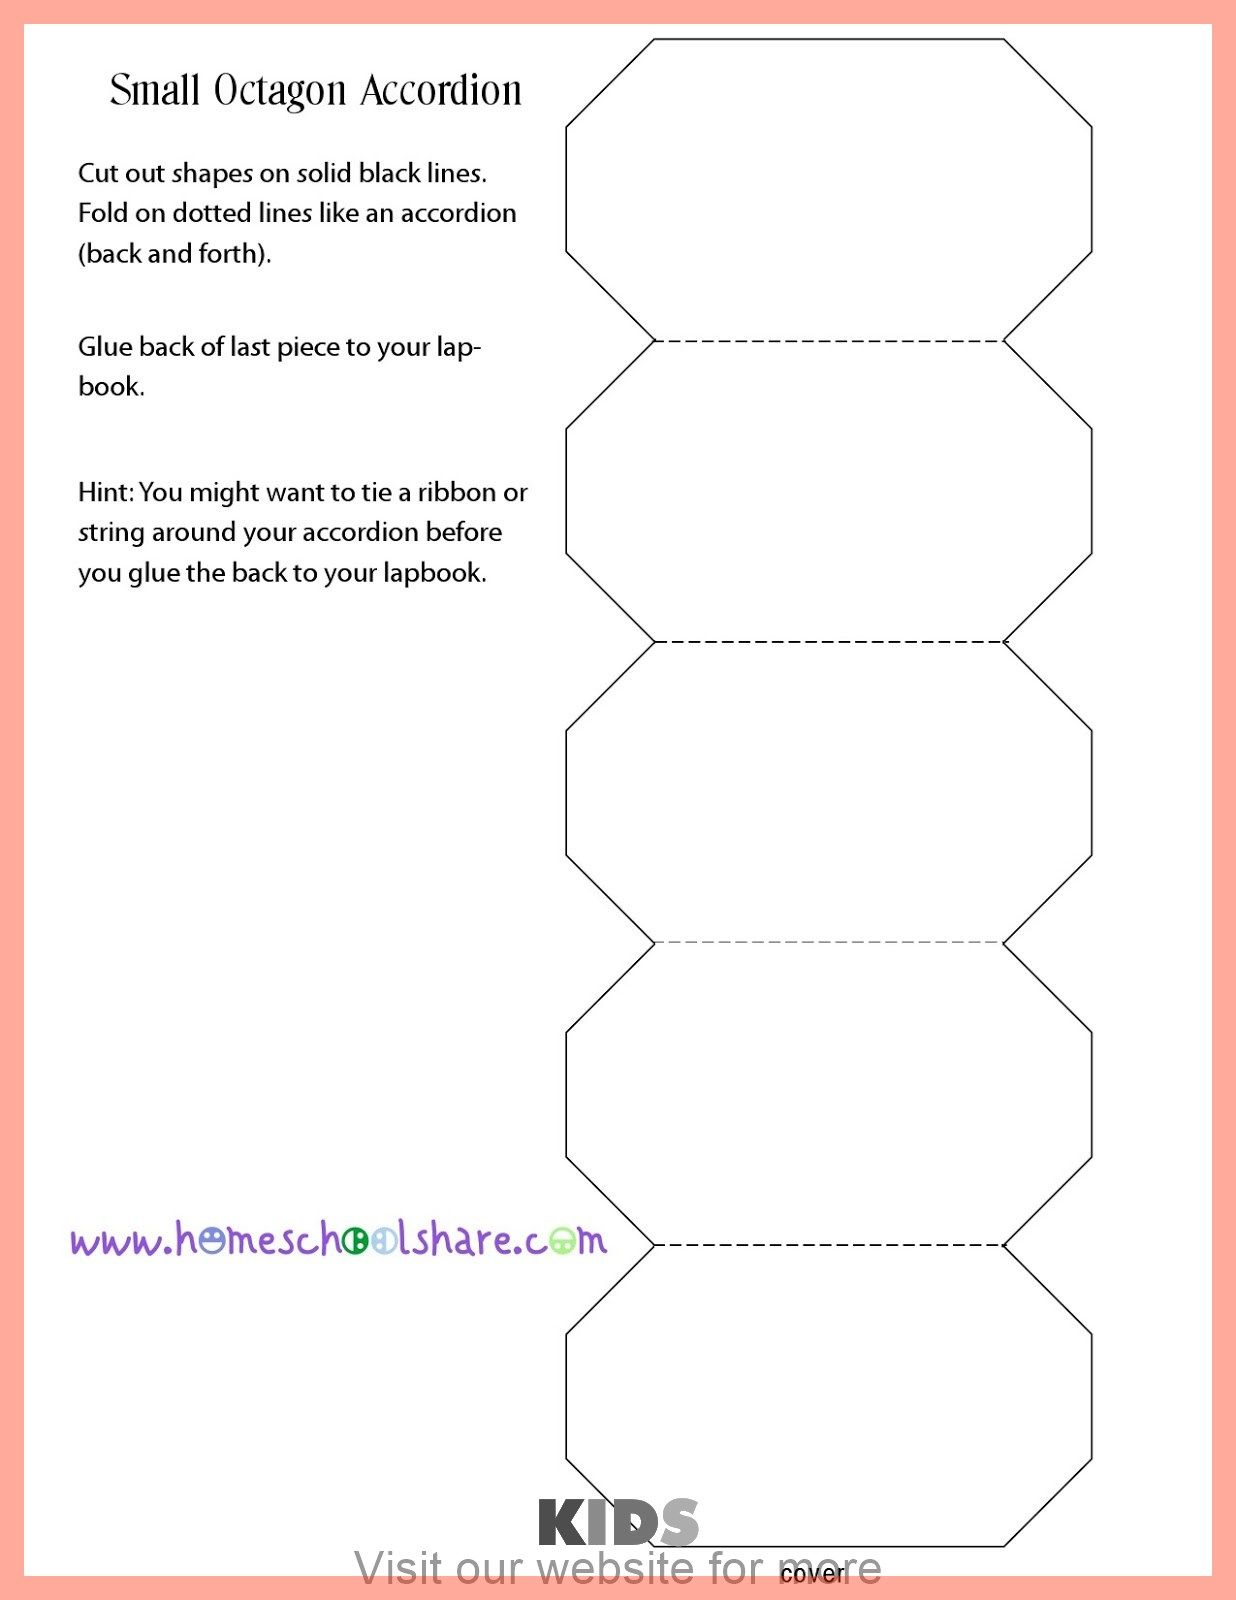 Learning English For Kids Free Printable In